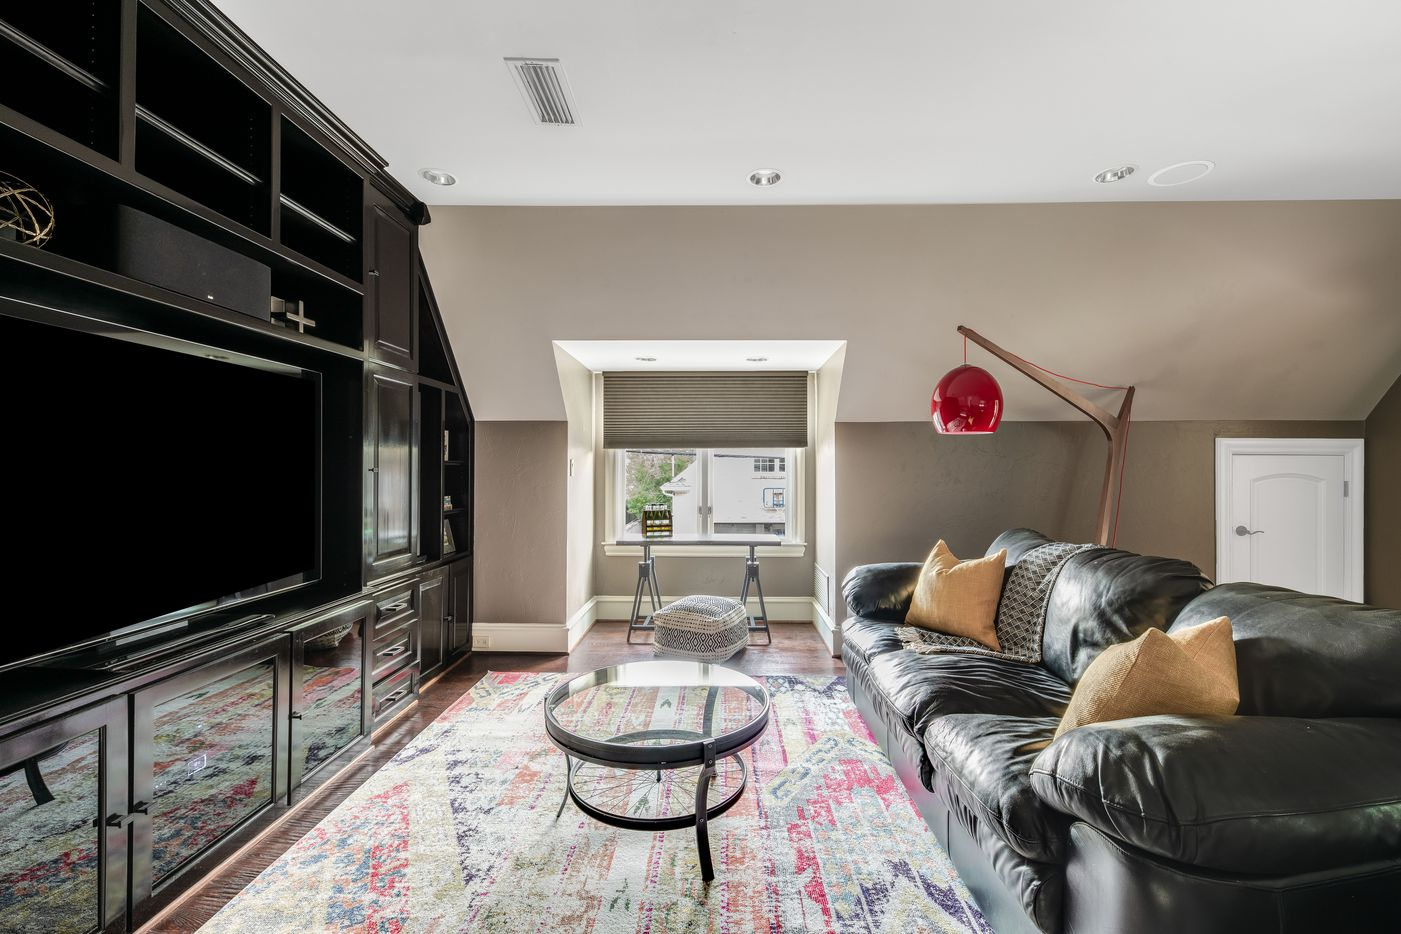 Take a look at the home at 3917 Marquette St. in University Park.